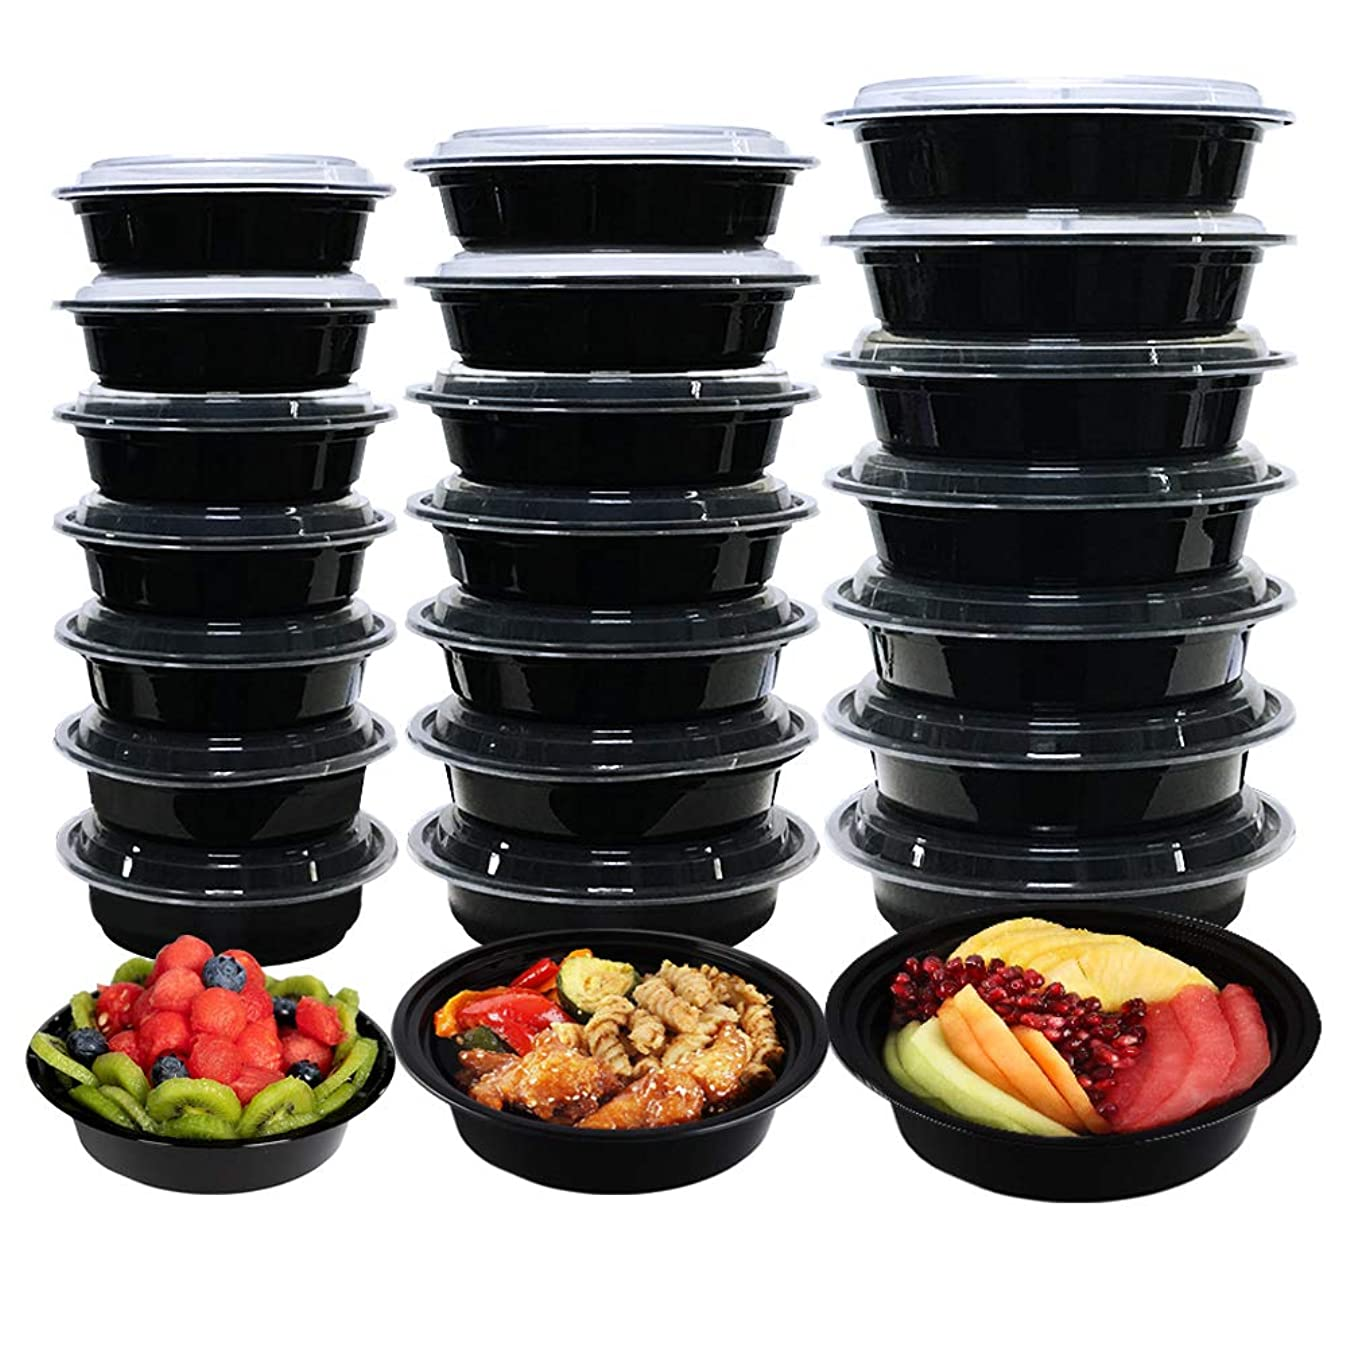 Happlee 24 Pack Meal Prep Containers 16 oz, 24 oz, 37 oz Plastic Reusable Stackable Food Containers with Lids Microwave Dishwasher Freezer Safe